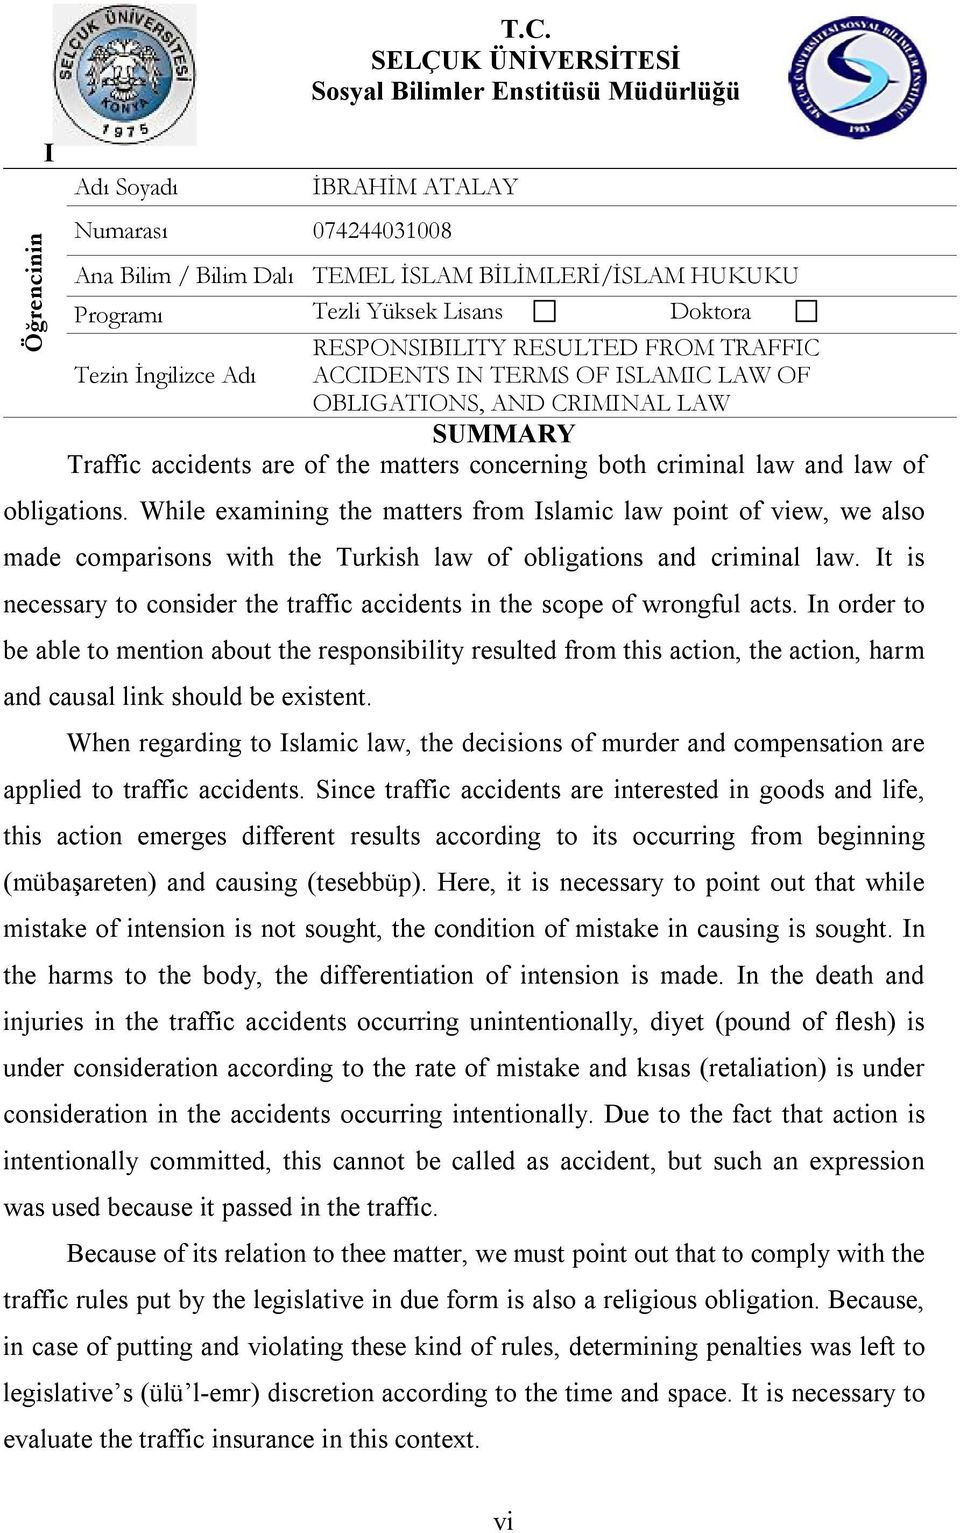 RESPONSIBILITY RESULTED FROM TRAFFIC Tezin İngilizce Adı ACCIDENTS IN TERMS OF ISLAMIC LAW OF OBLIGATIONS, AND CRIMINAL LAW SUMMARY Traffic accidents are of the matters concerning both criminal law